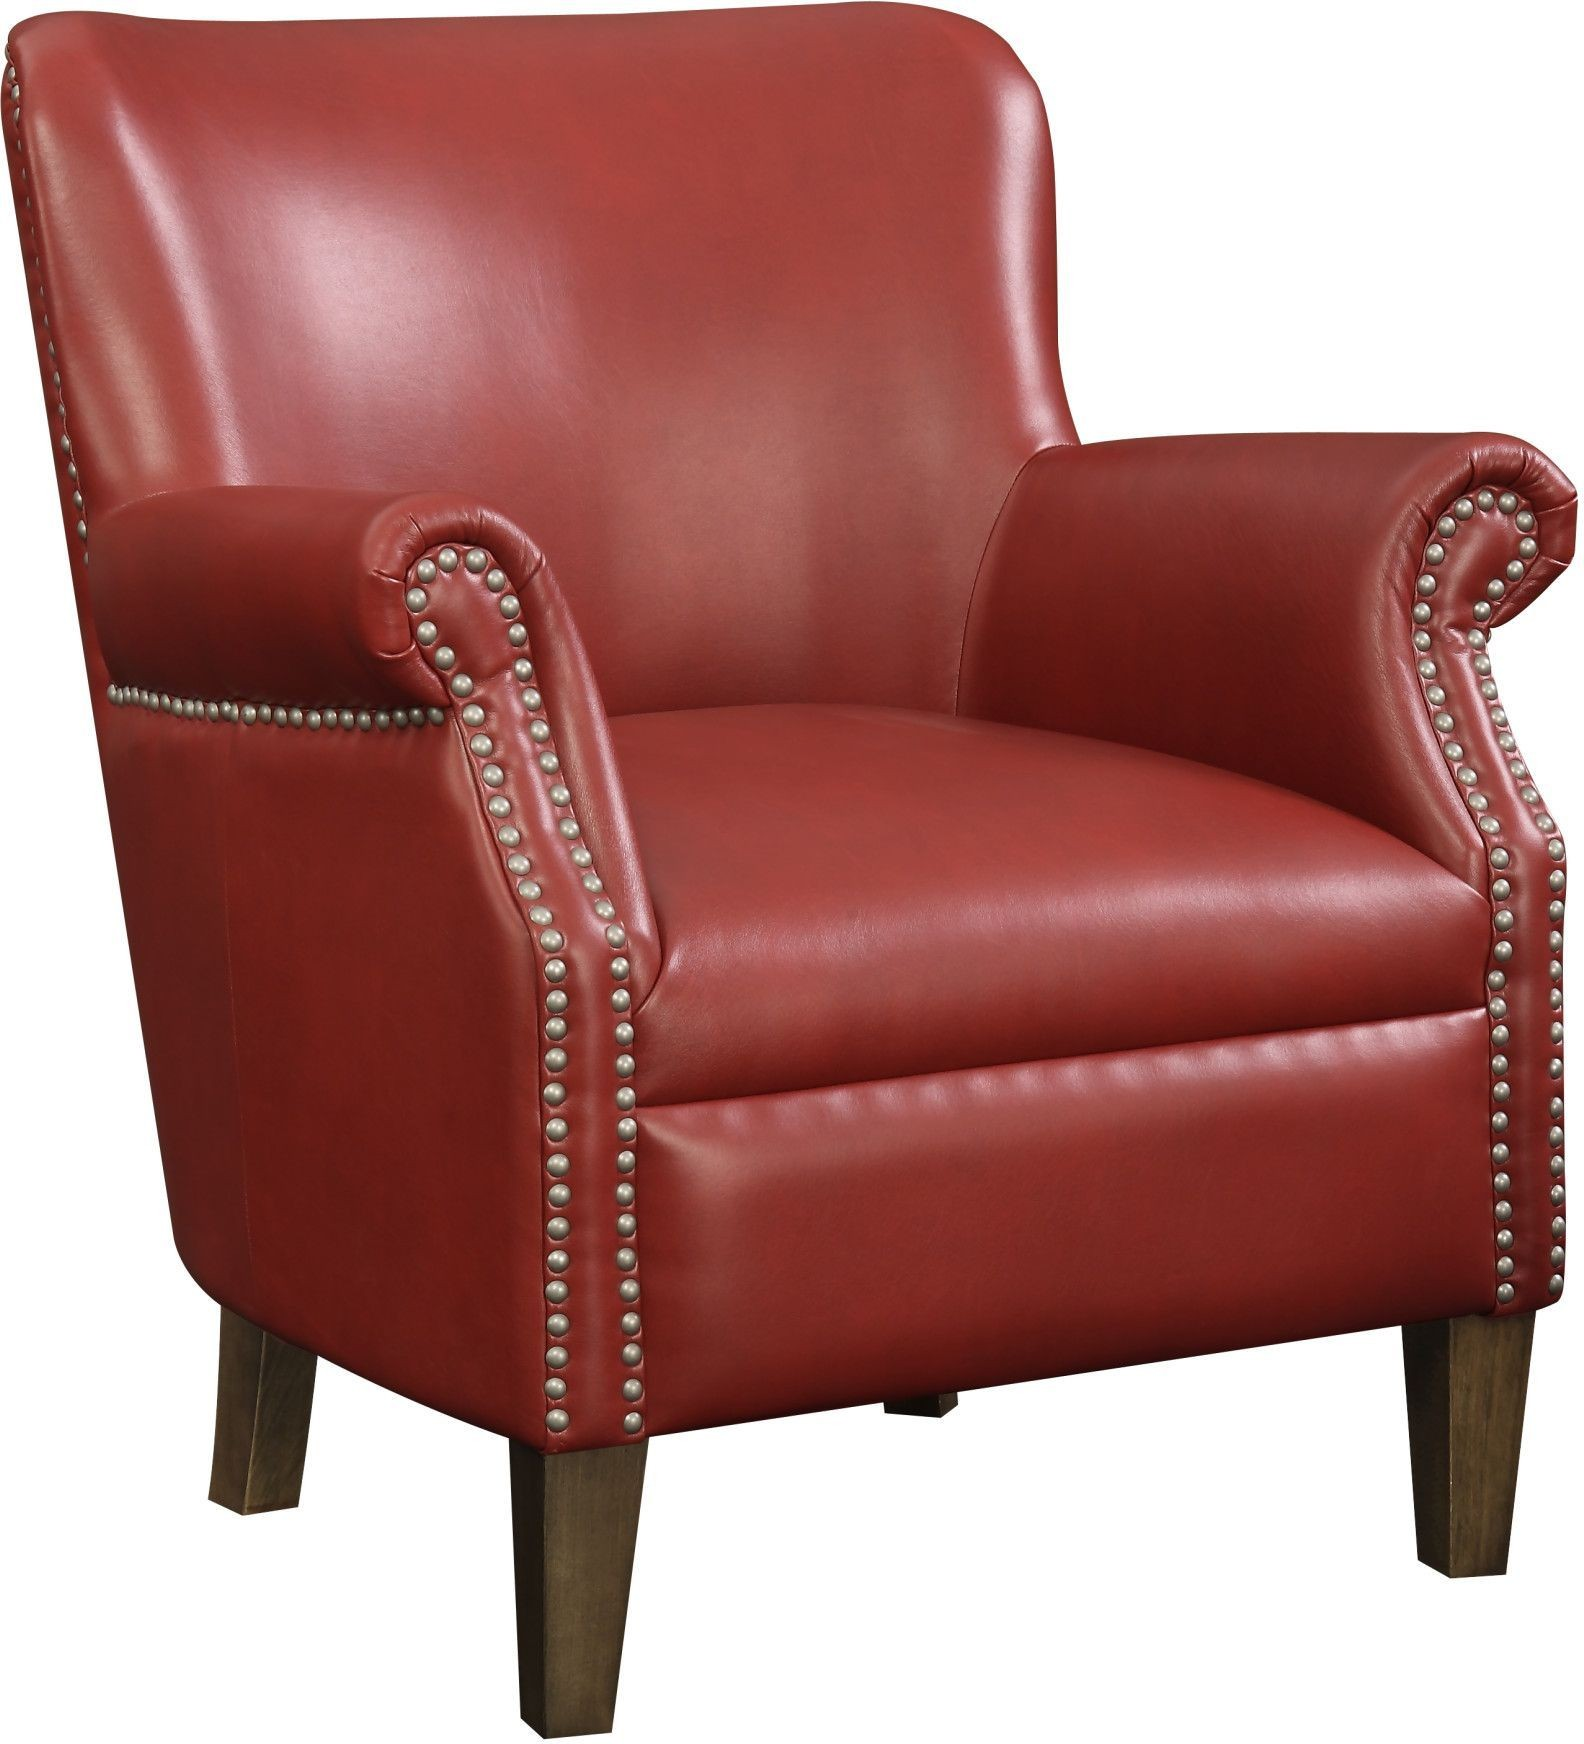 Red Accents Oscar Red Accent Chair From Emerald Home Coleman Furniture